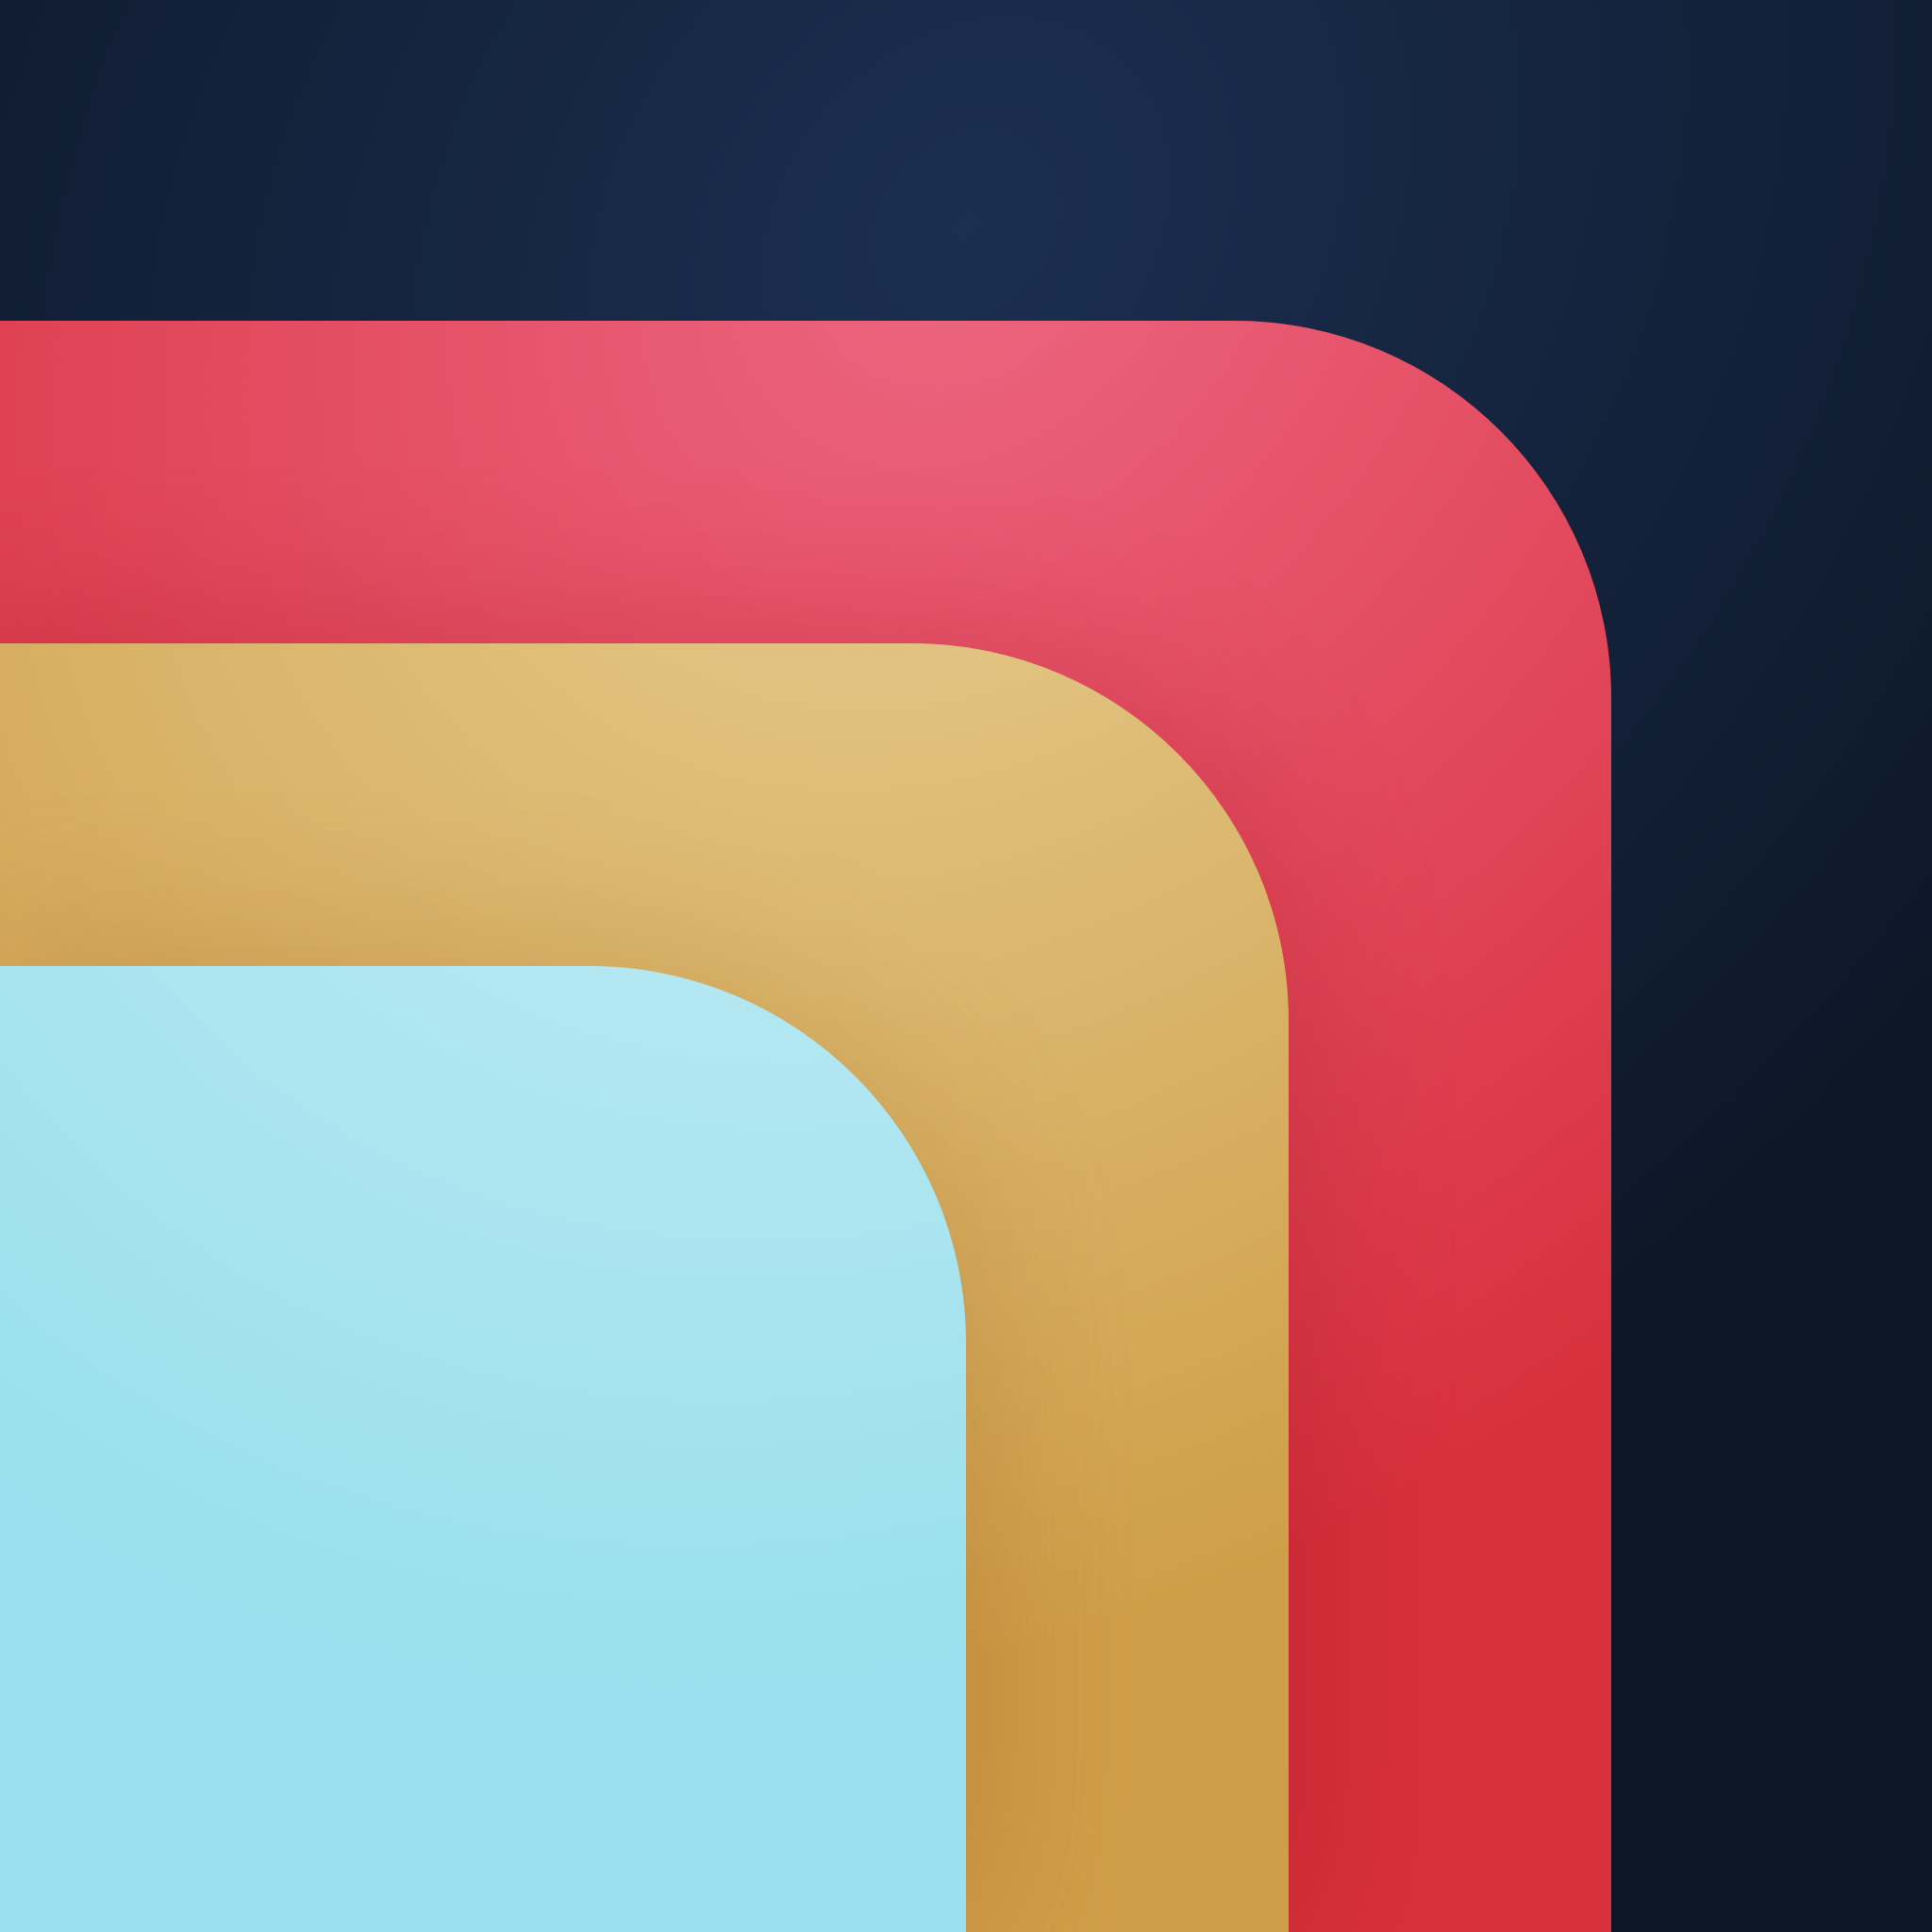 An elegant app icon for QYOU: The Question Party app